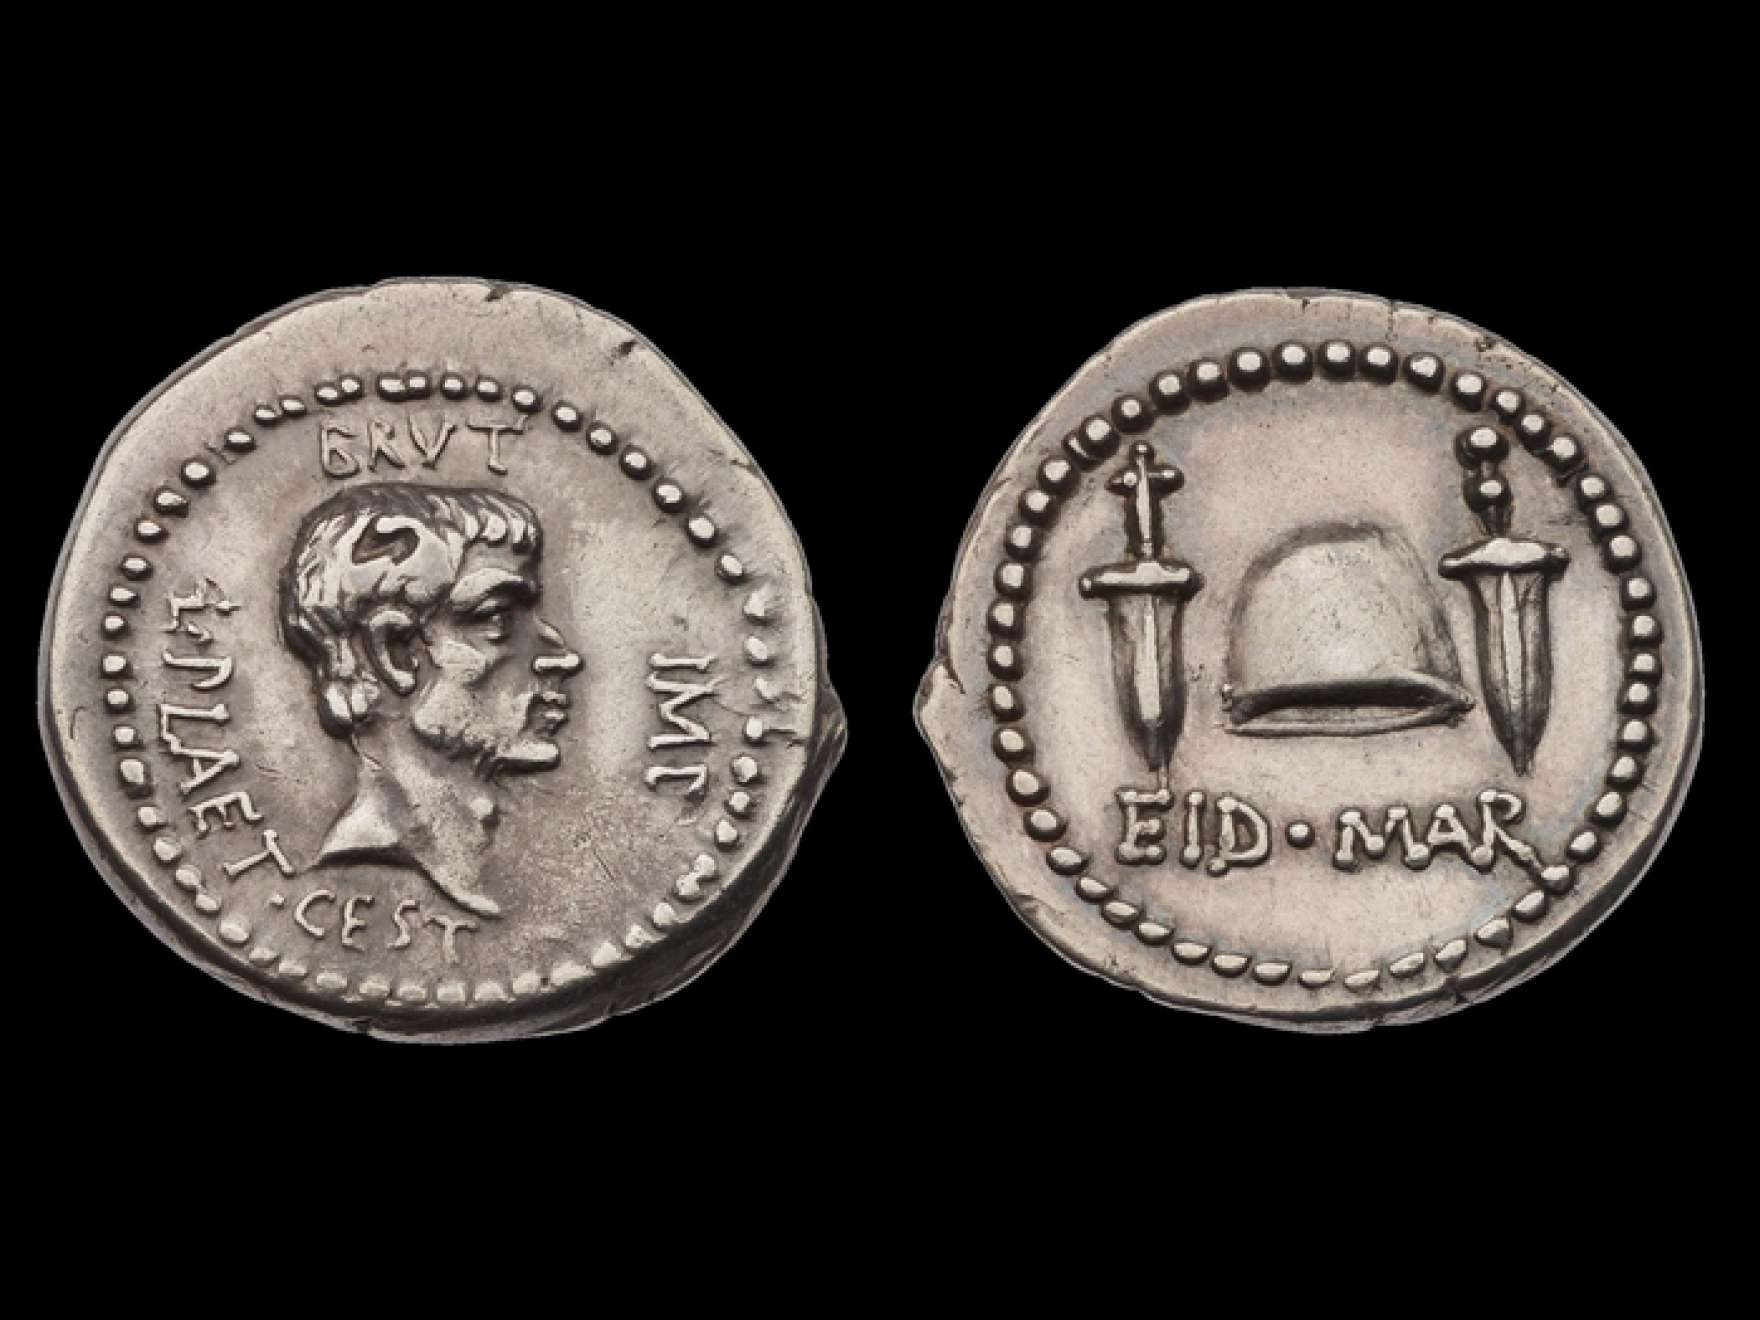 [Ides of March denarius]